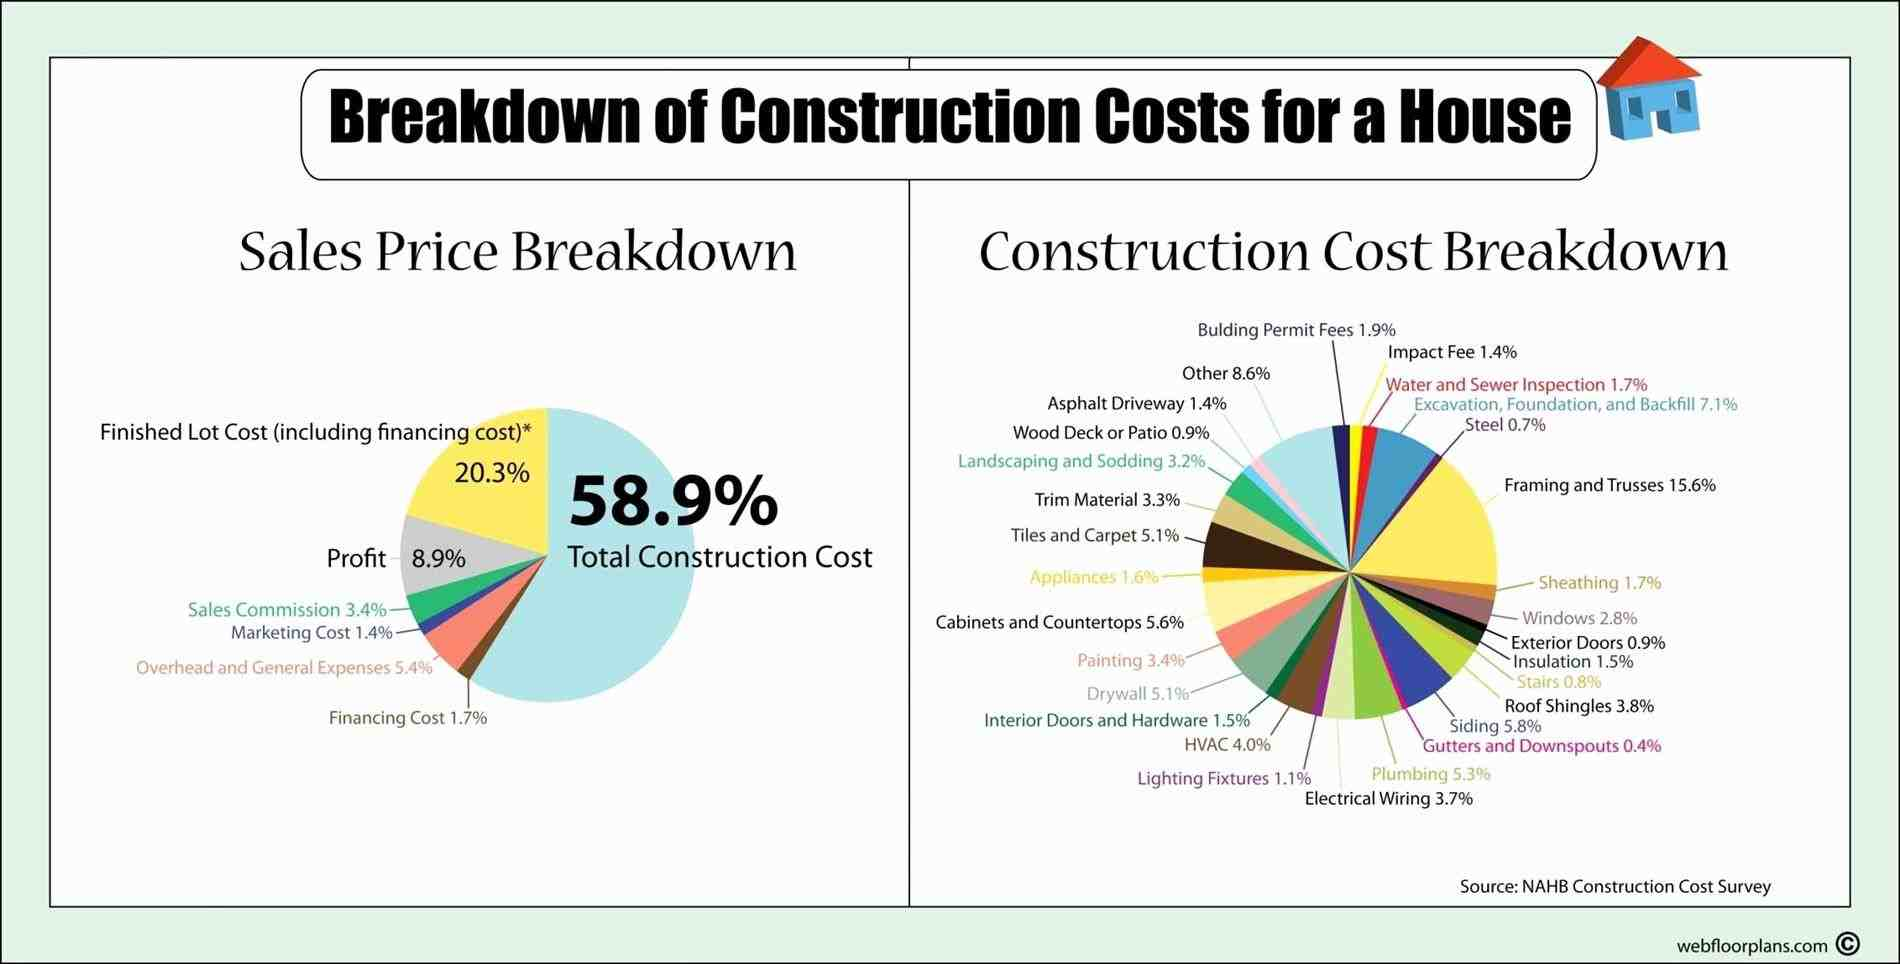 Home Construction Expense Calculator Worksheet estimating spreadsheet template natural buff dog donation calculator lovely home renovation bud excel donation Home